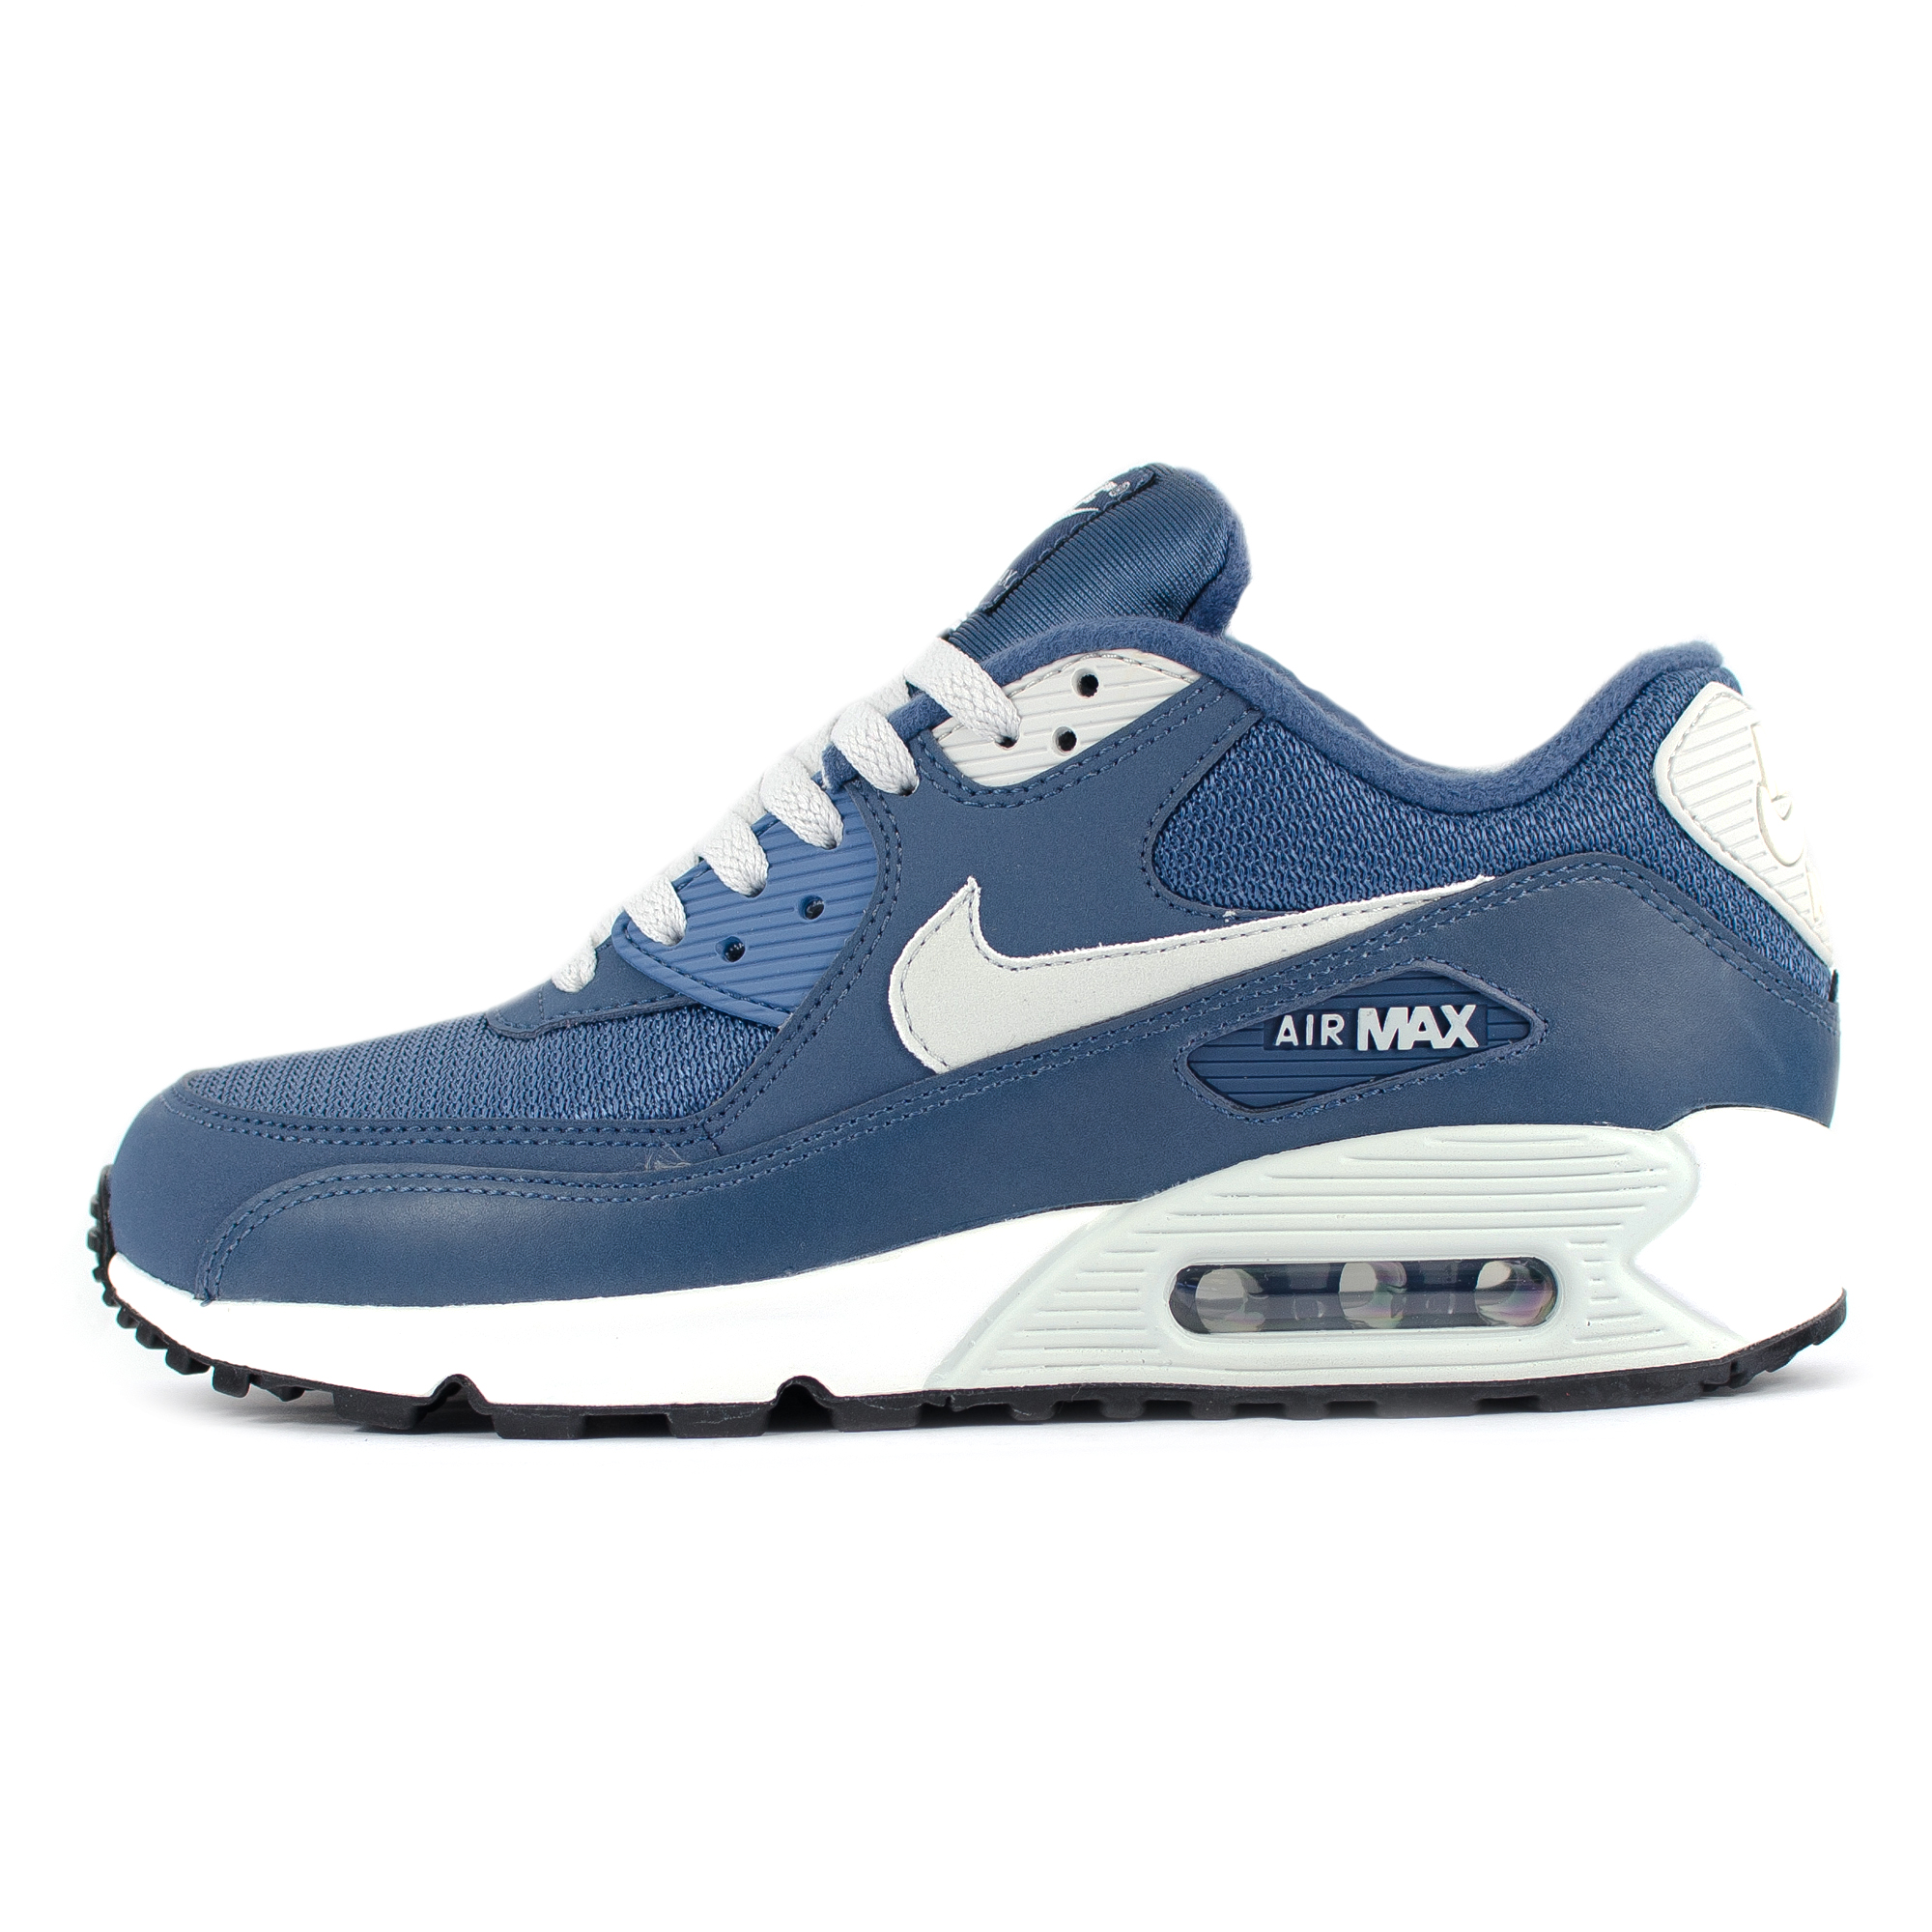 Details about Nike Air Max 90 Essential Blue Grey Slate White Trainers    Nike Air Max 90 Essential Blue